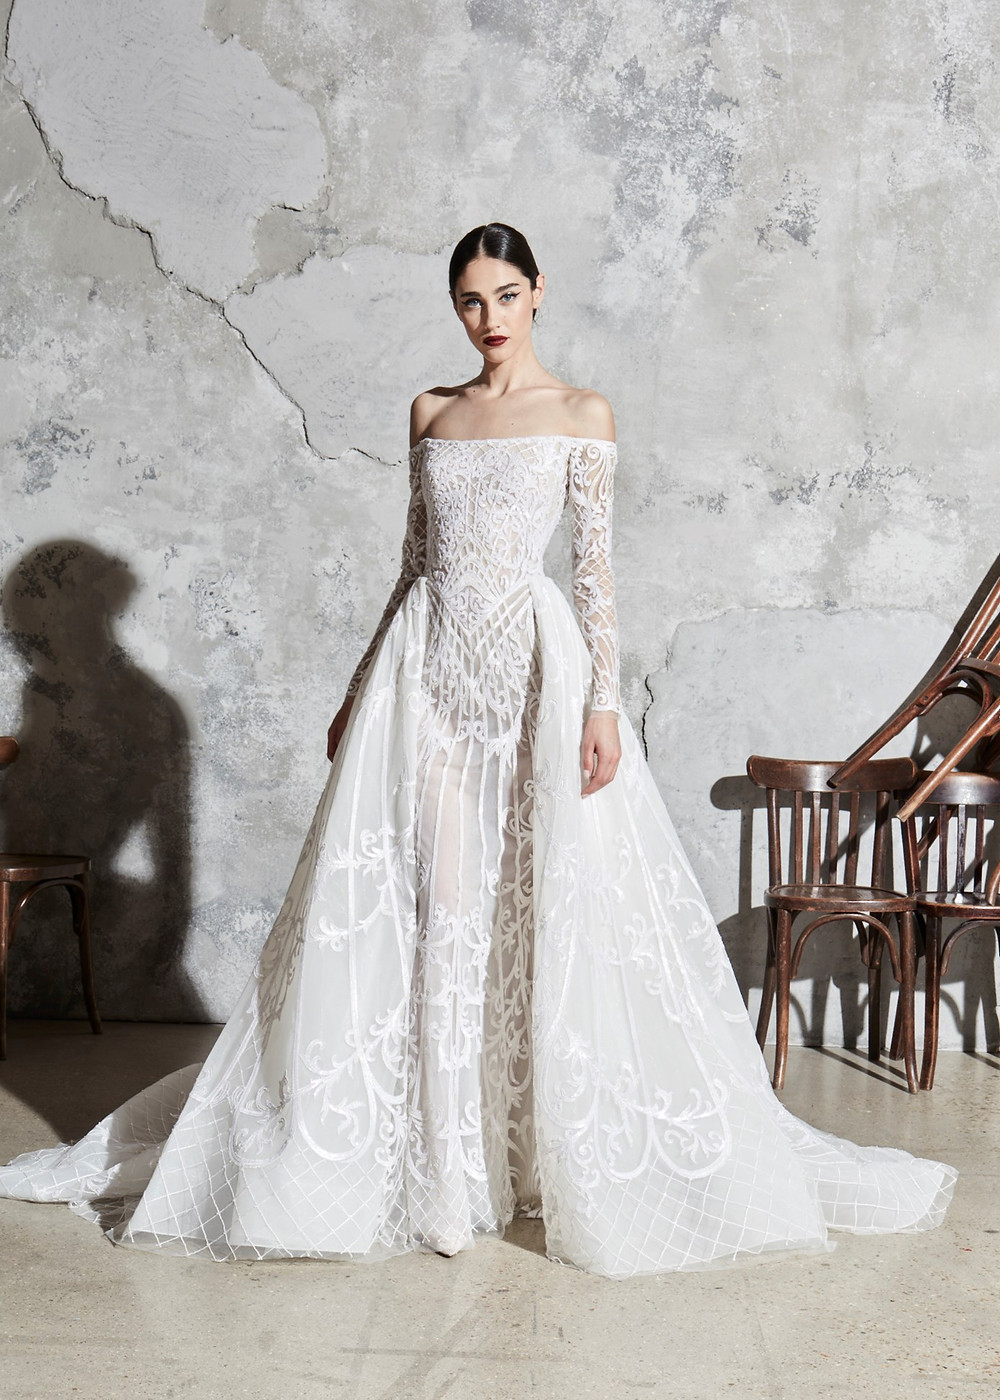 An off the shoulder, A-line wedding dress, with detachable skirt and long sleeves